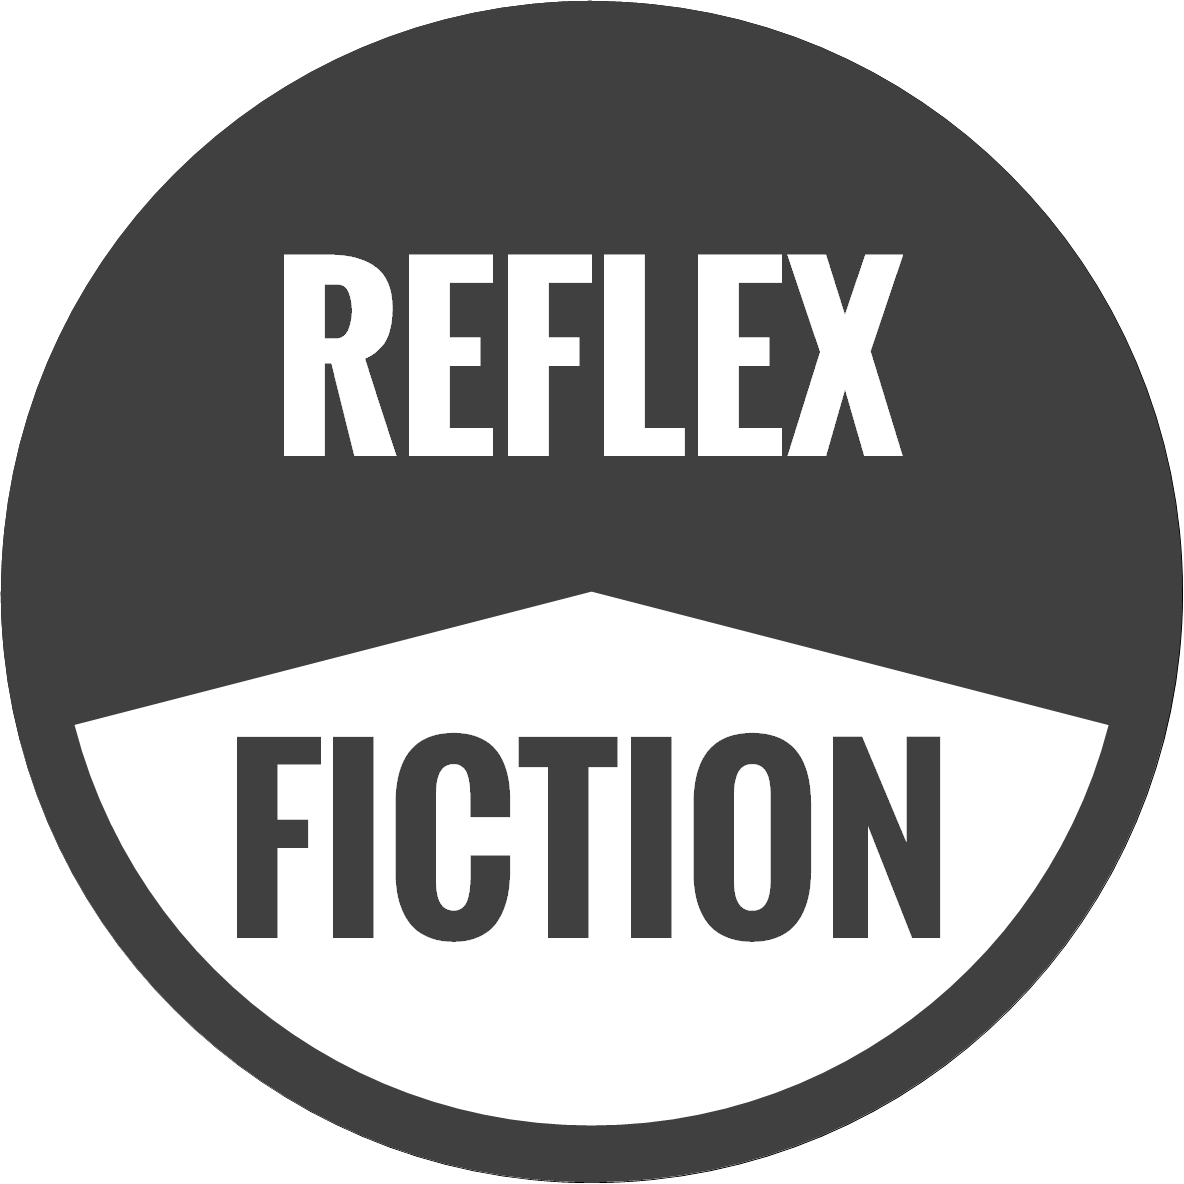 Reflex Fiction